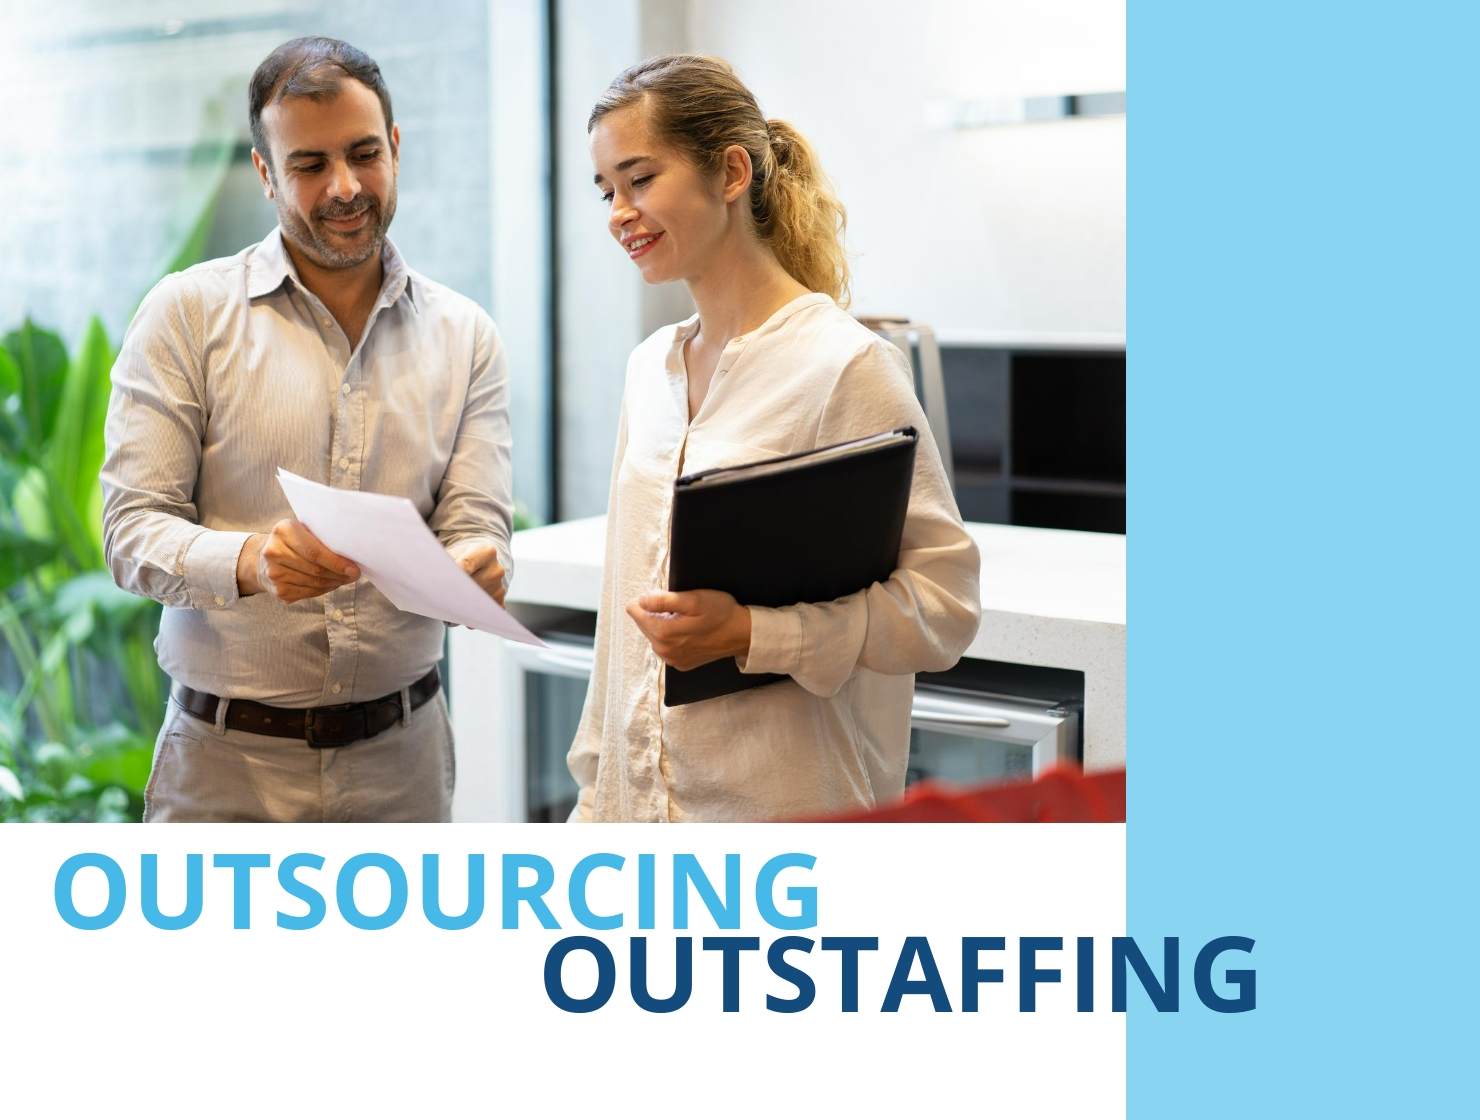 outsourcing outstaffing services software development